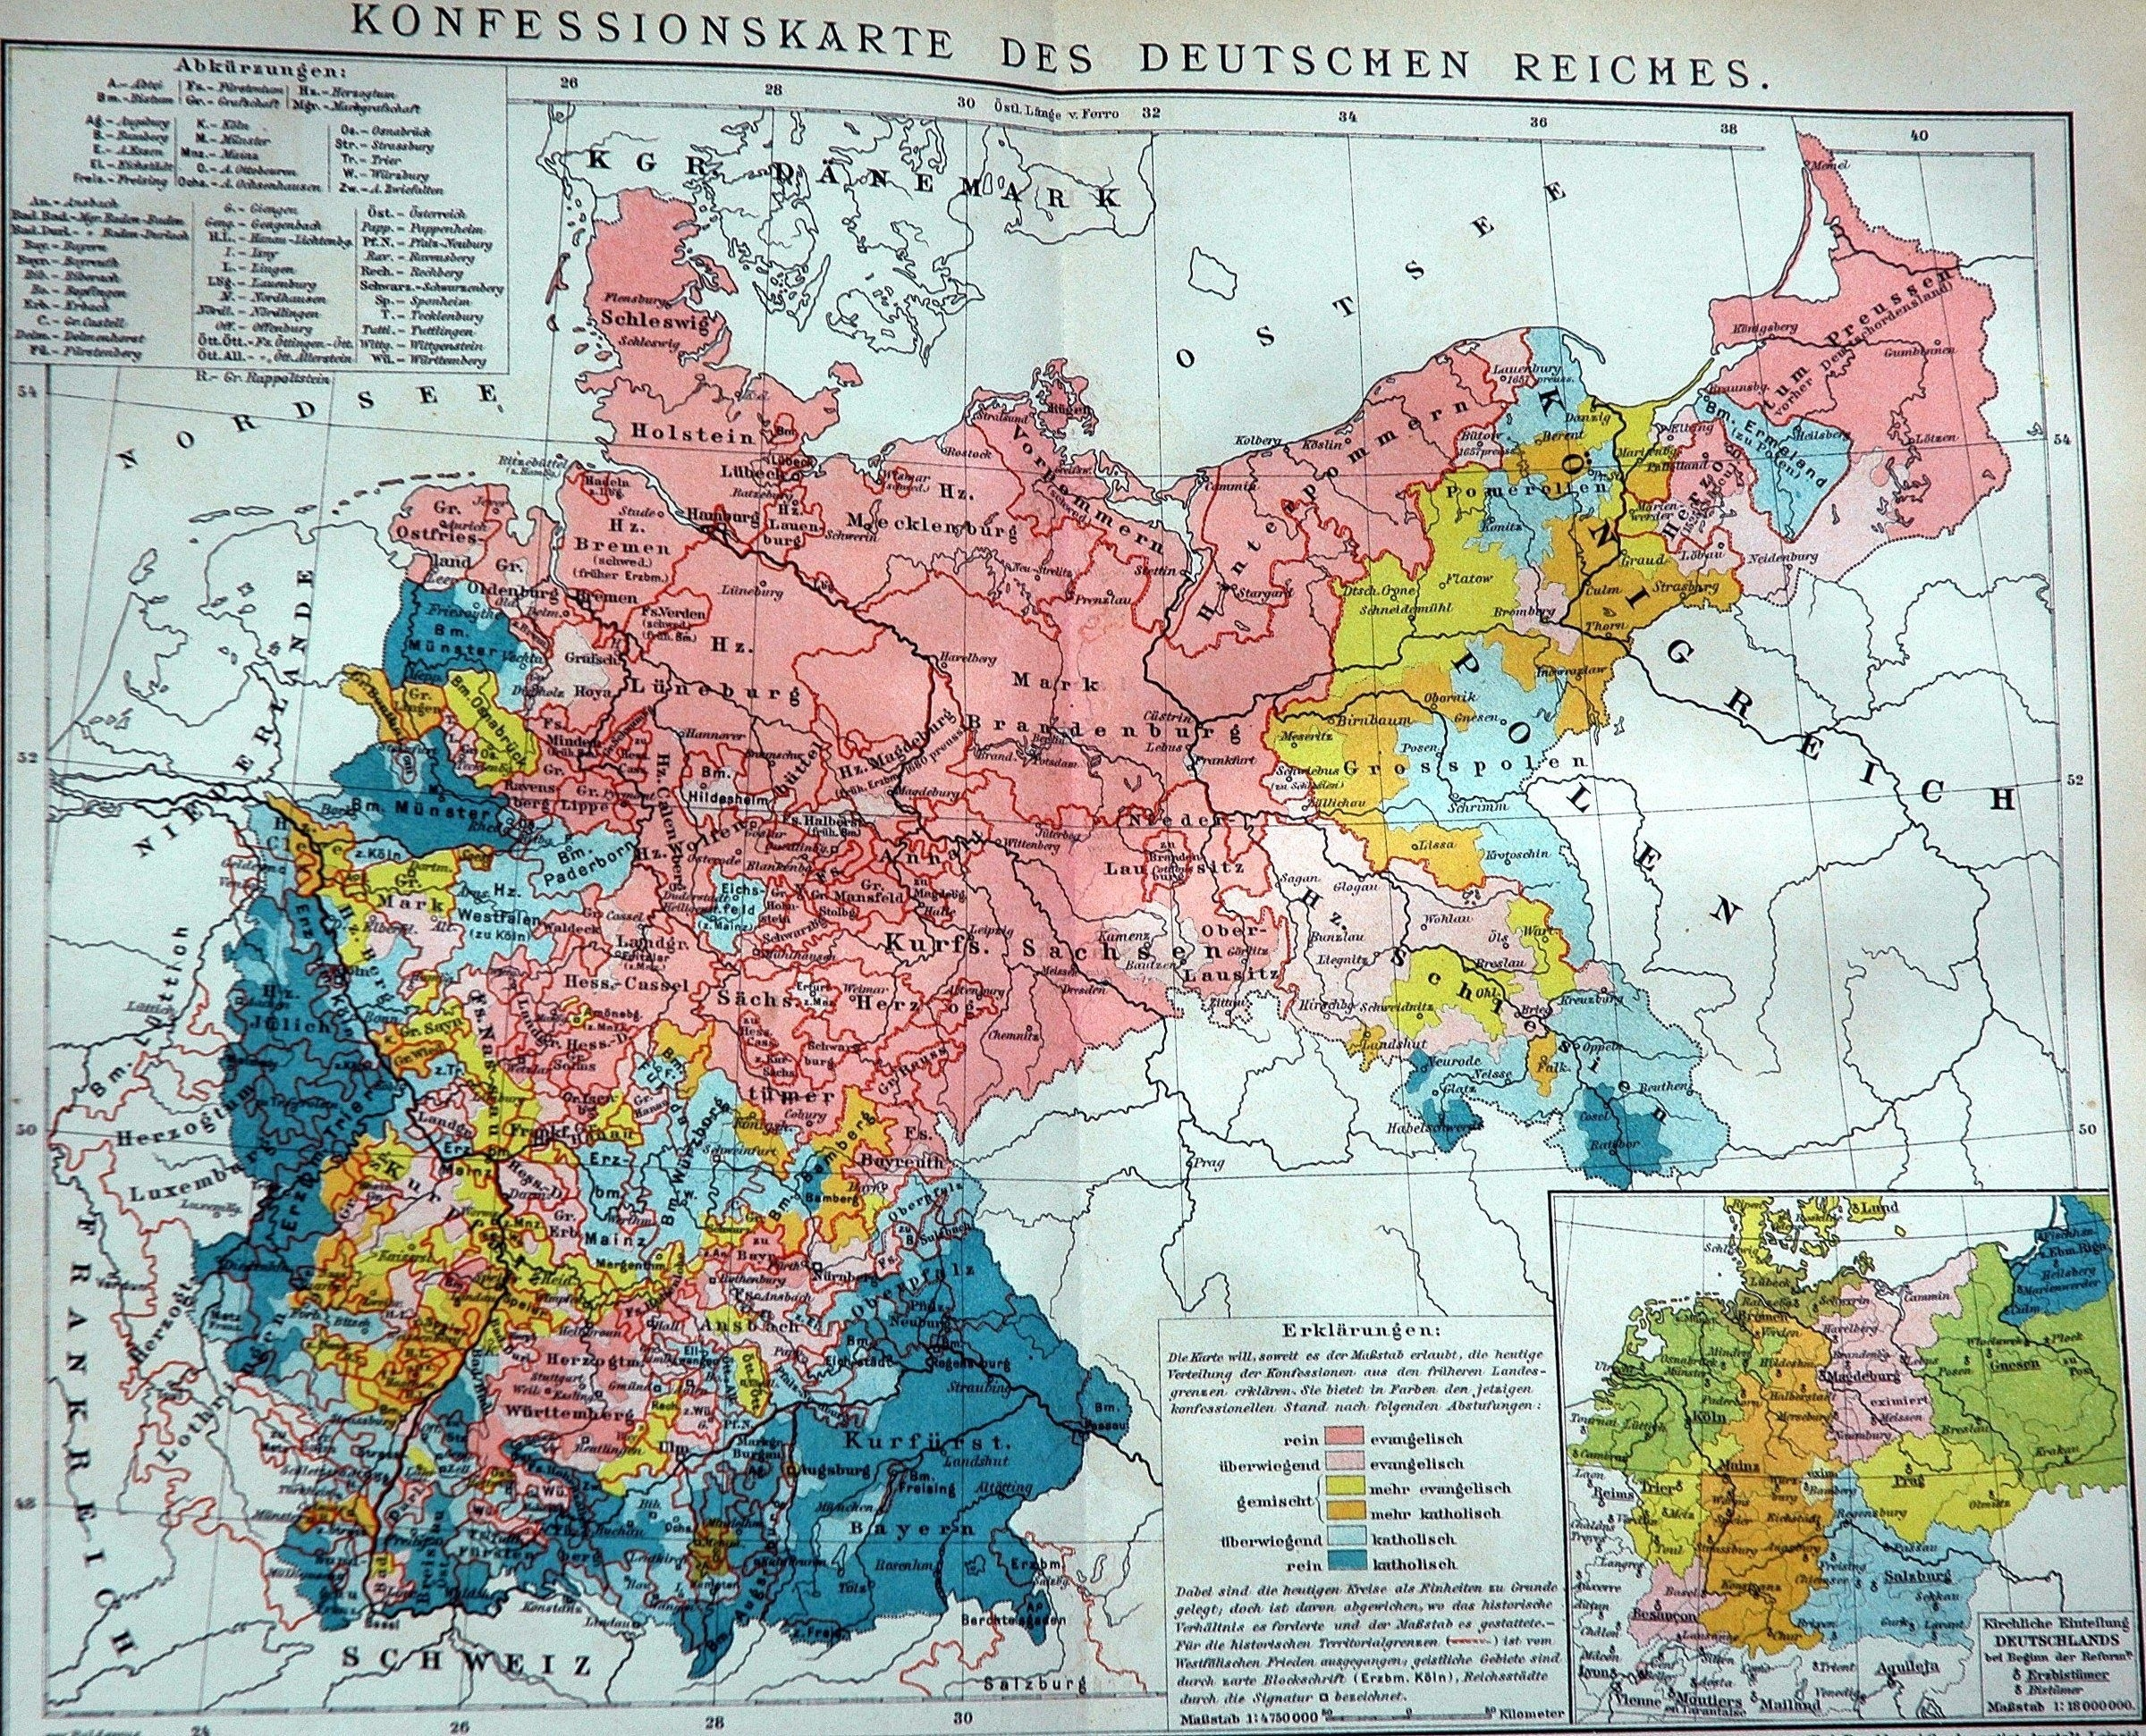 1898 Historical Map Of The German Empire: Religious Denomination with German Maps And Facts For Genealogy